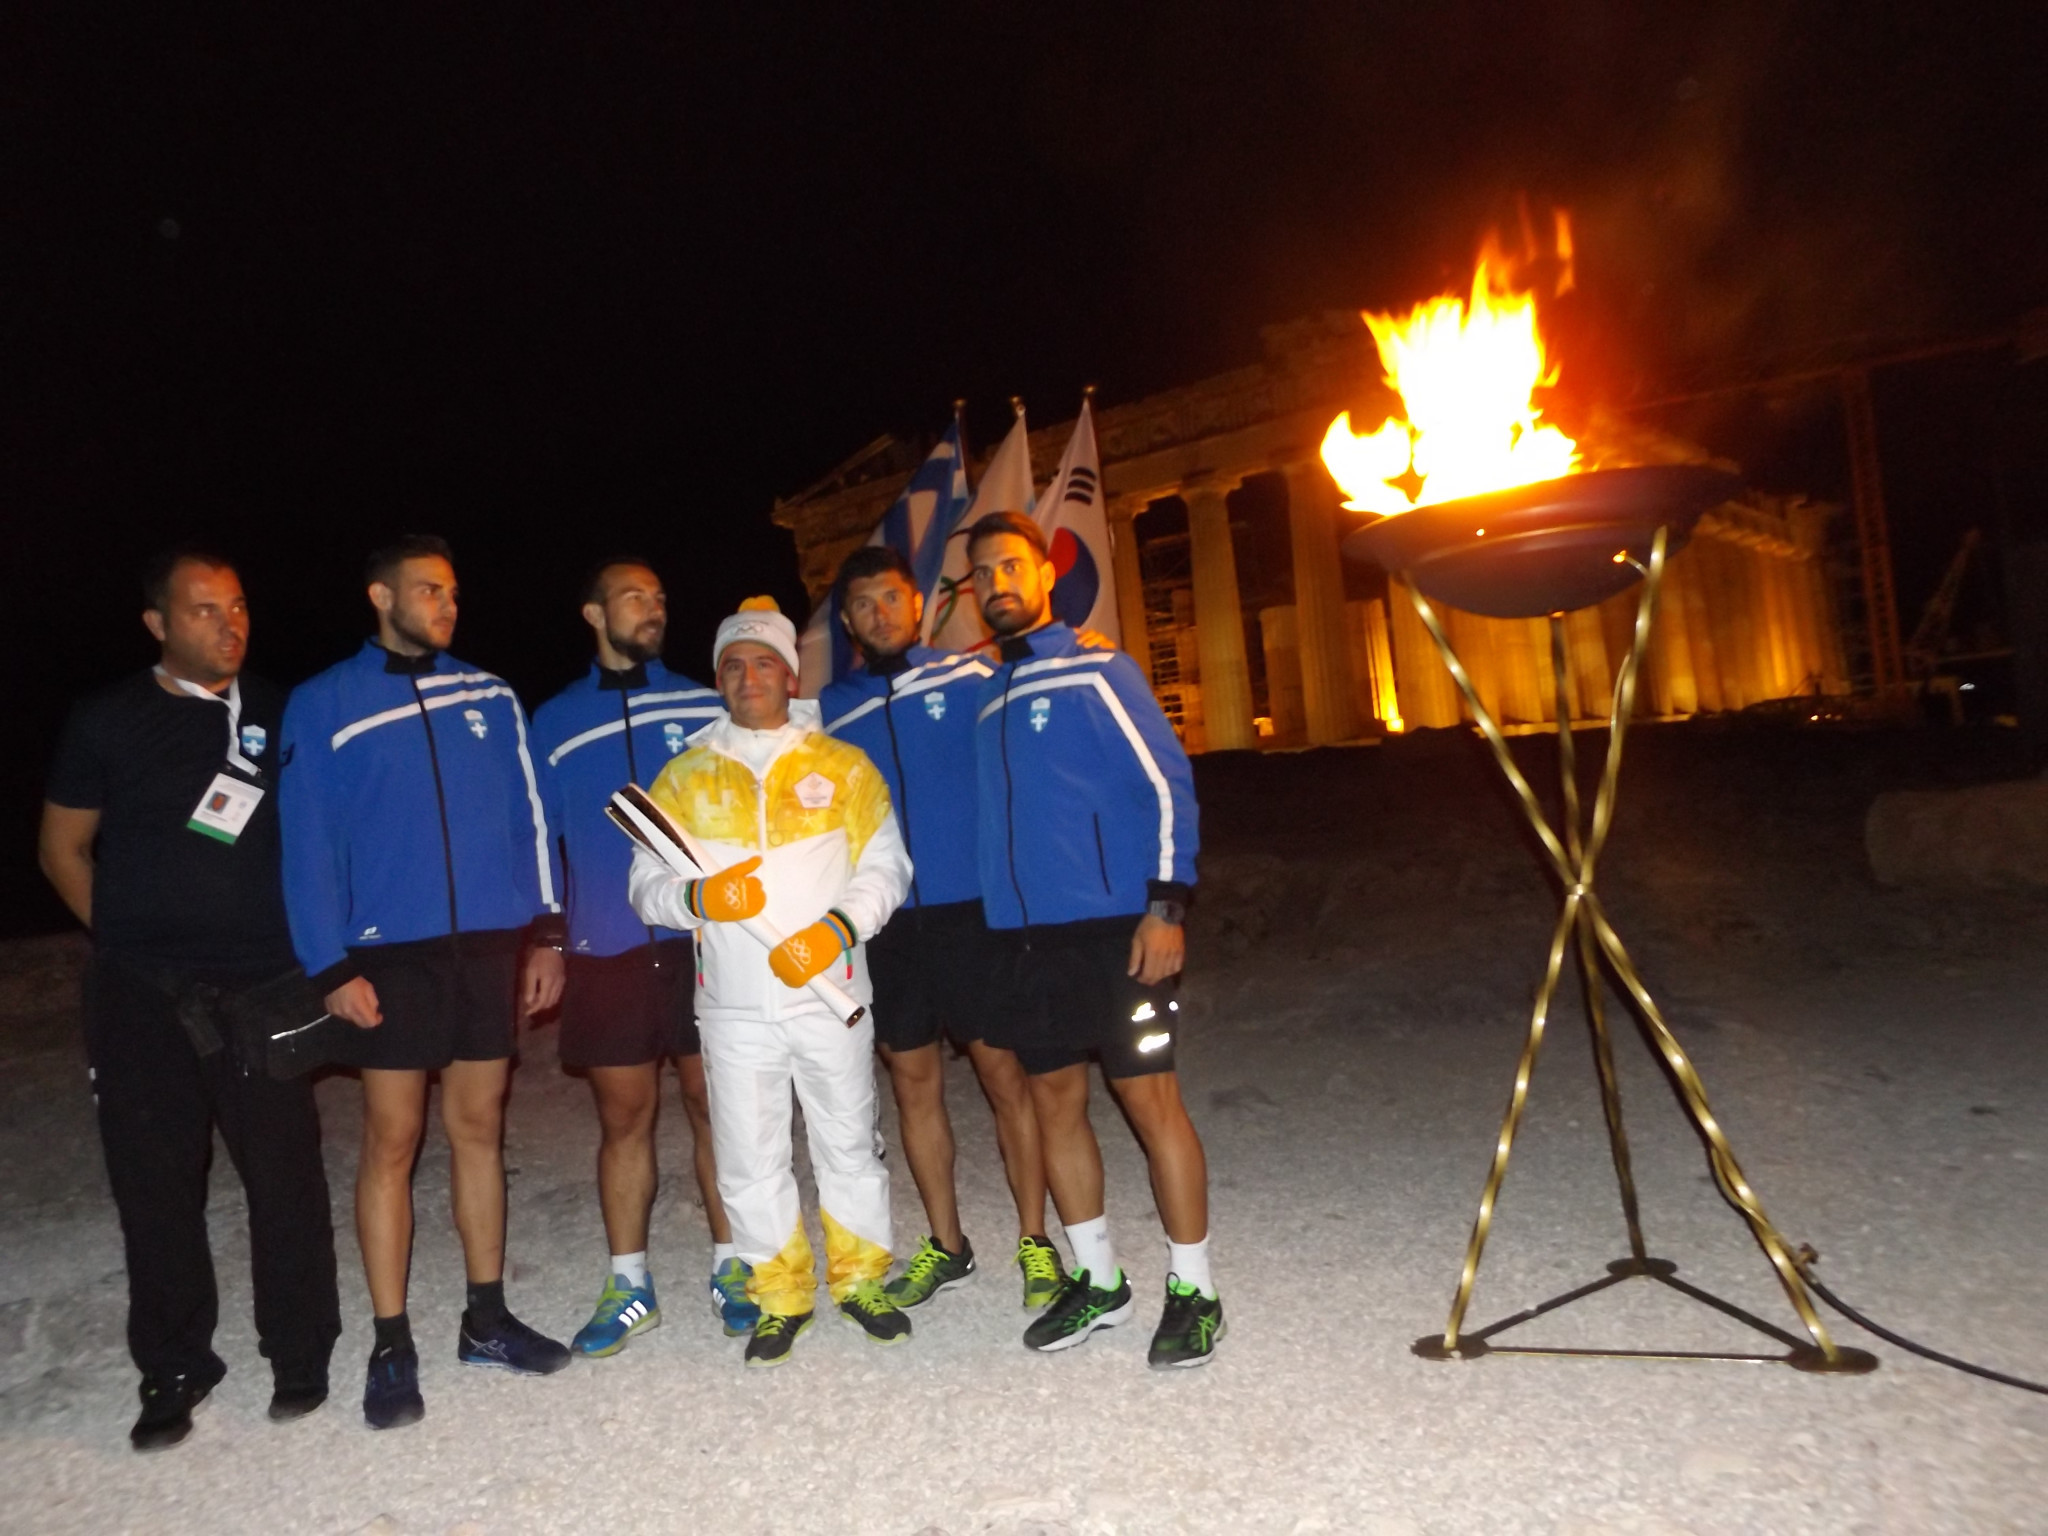 Athens 2004 gold medallist Dimosthenis Tampakos is pictured with Torch Relay organisers ©ITG